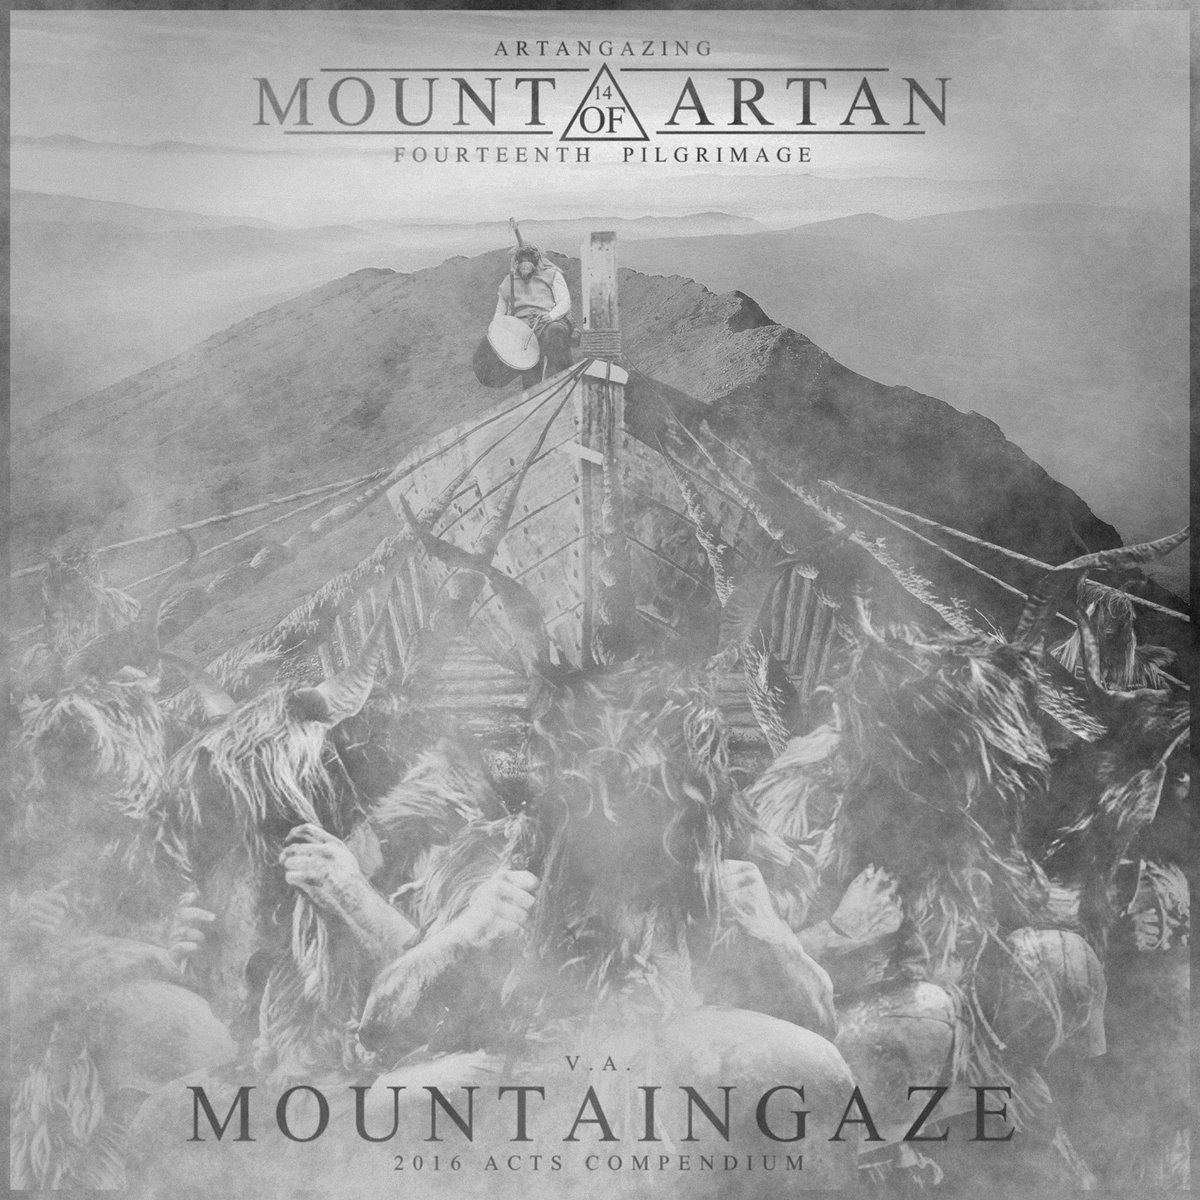 Mountaingaze XIV